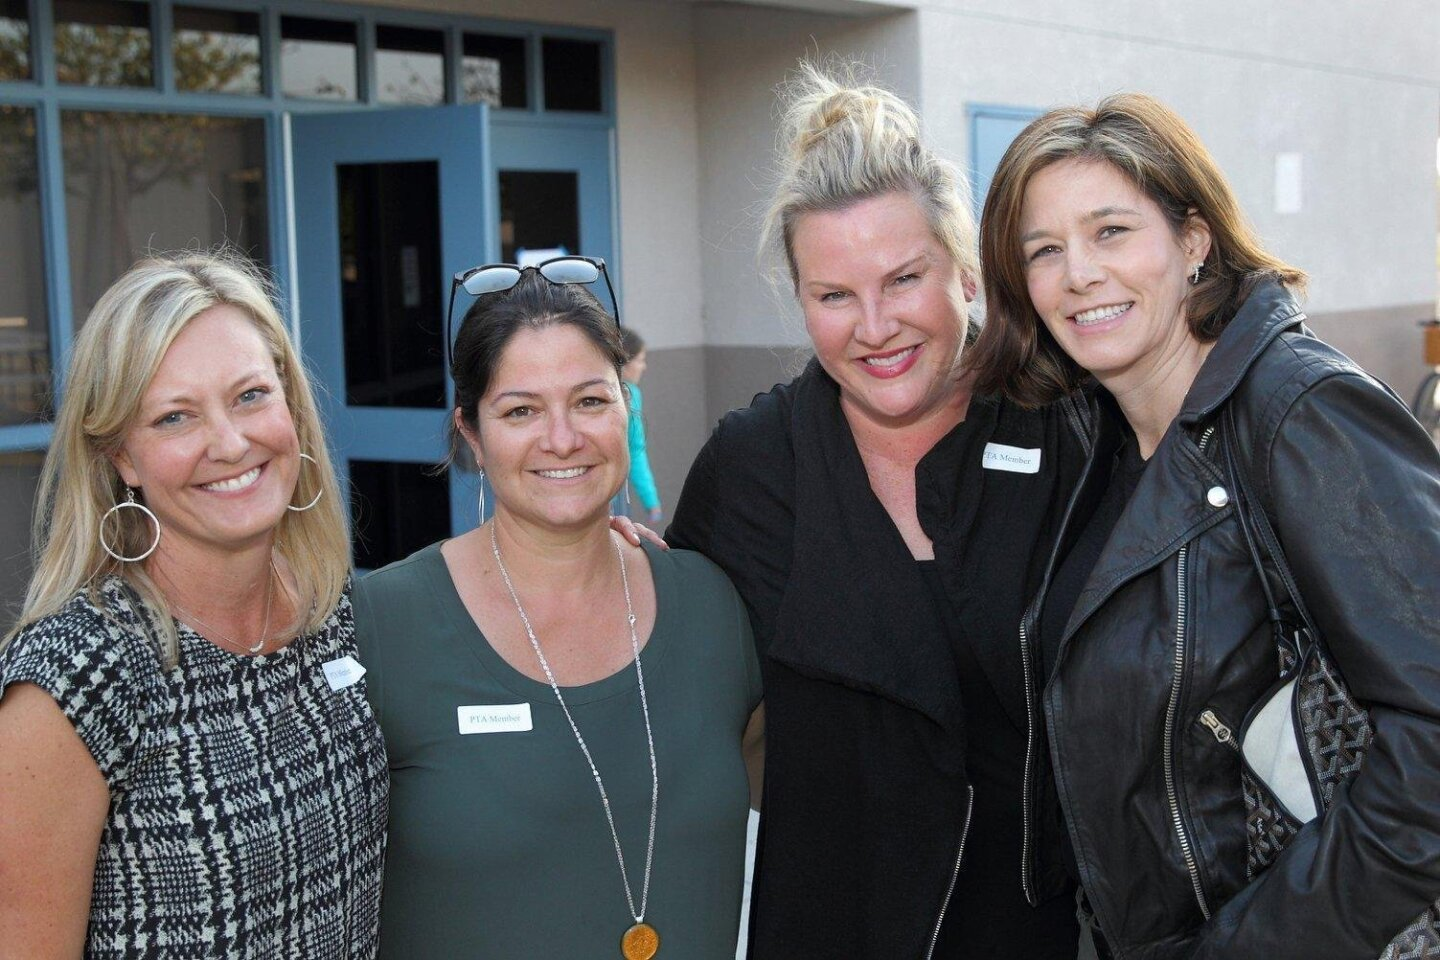 PTA President Lesley Ballard, PTA VP for Programs Einat Lerer, Margaret Bellowe, Kimberly Twomey